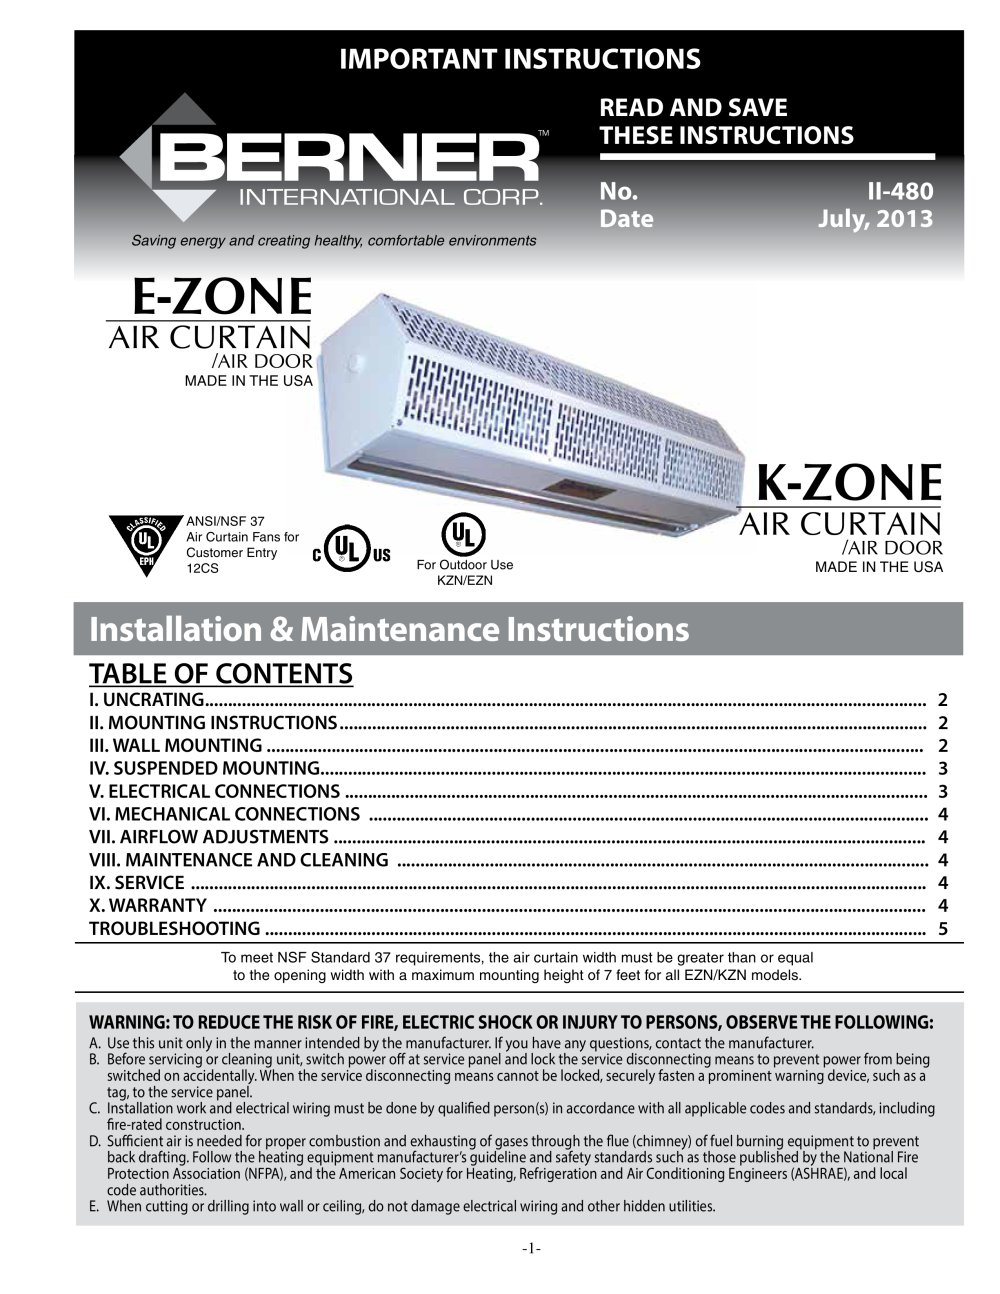 e zone 491495_1b e zone berner international pdf catalogue technical